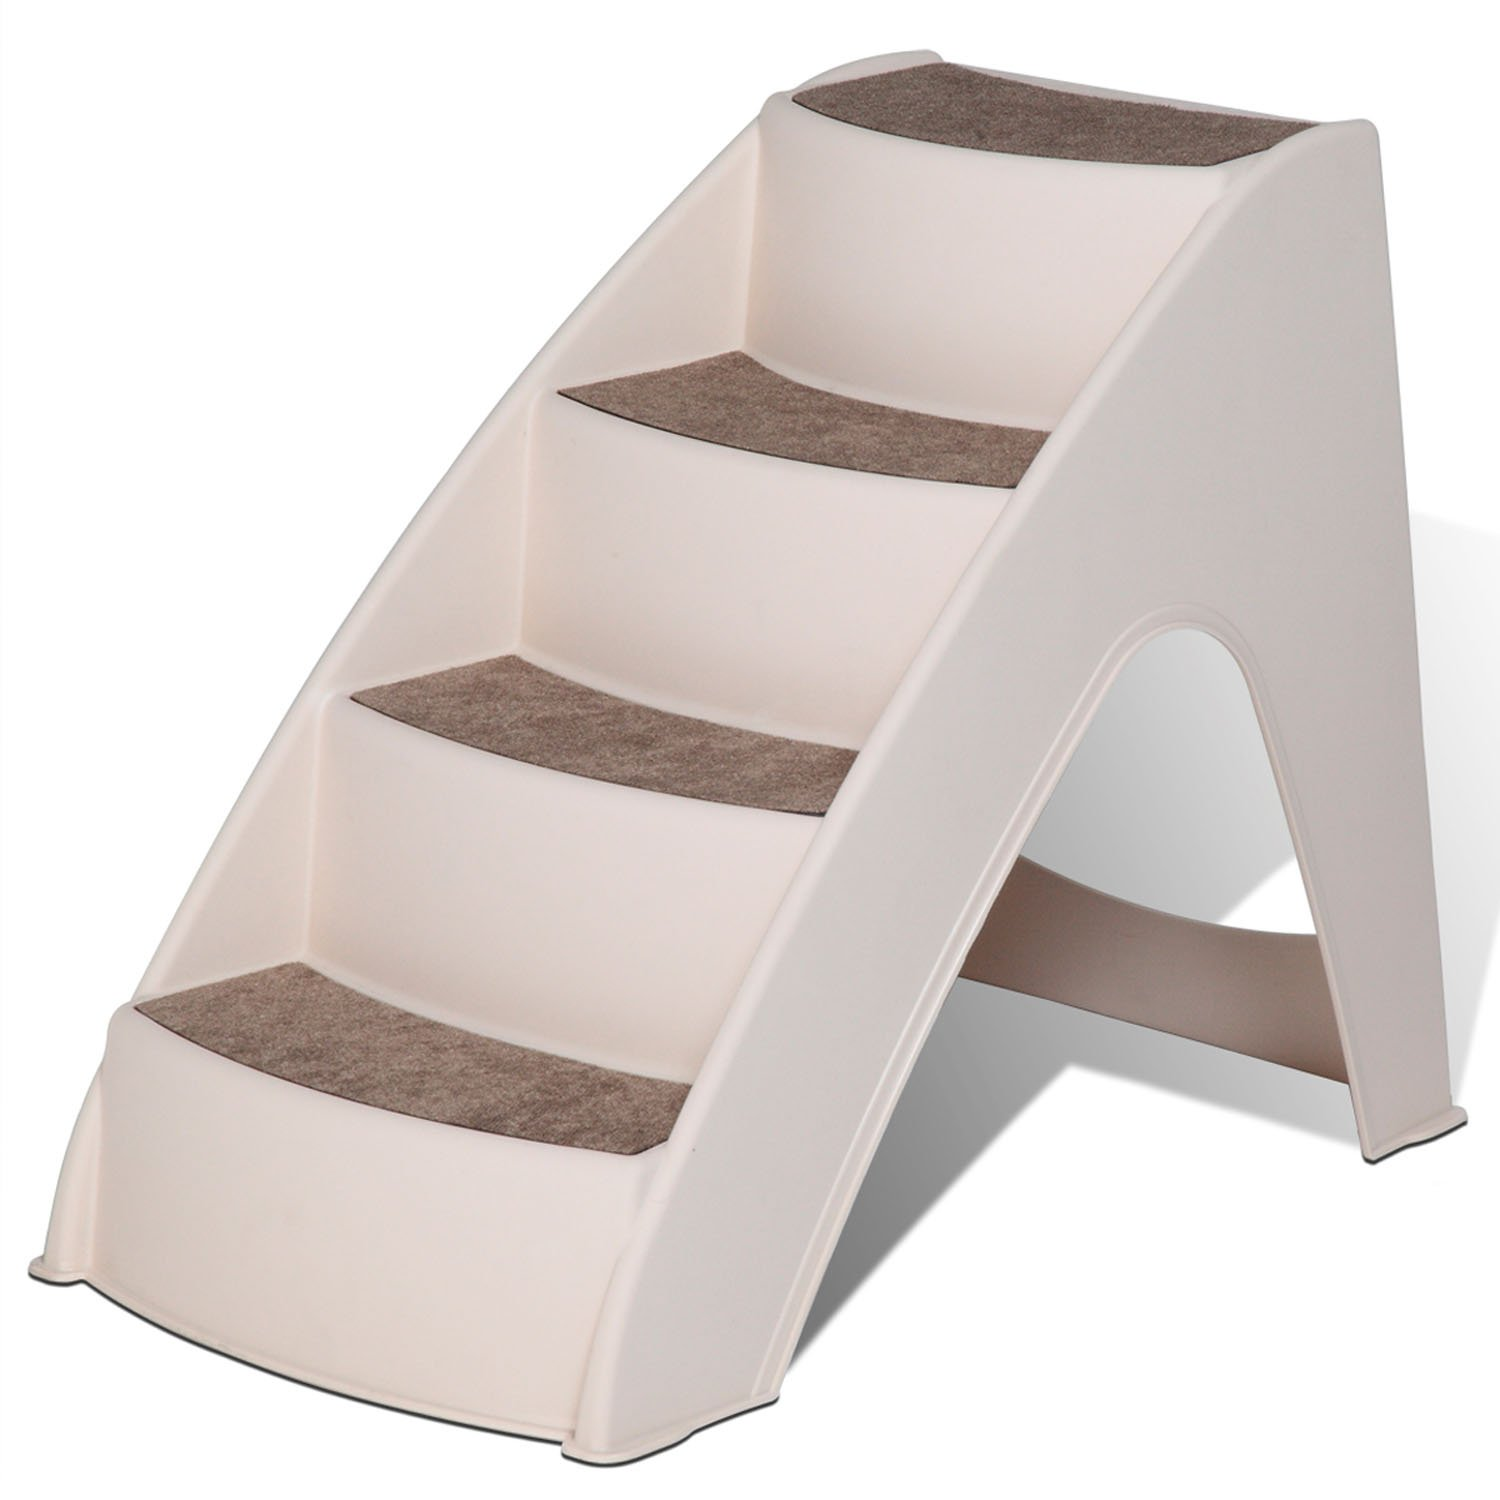 Solvit PupSTEP Lite Small Pet Stairs, Beige, One Size